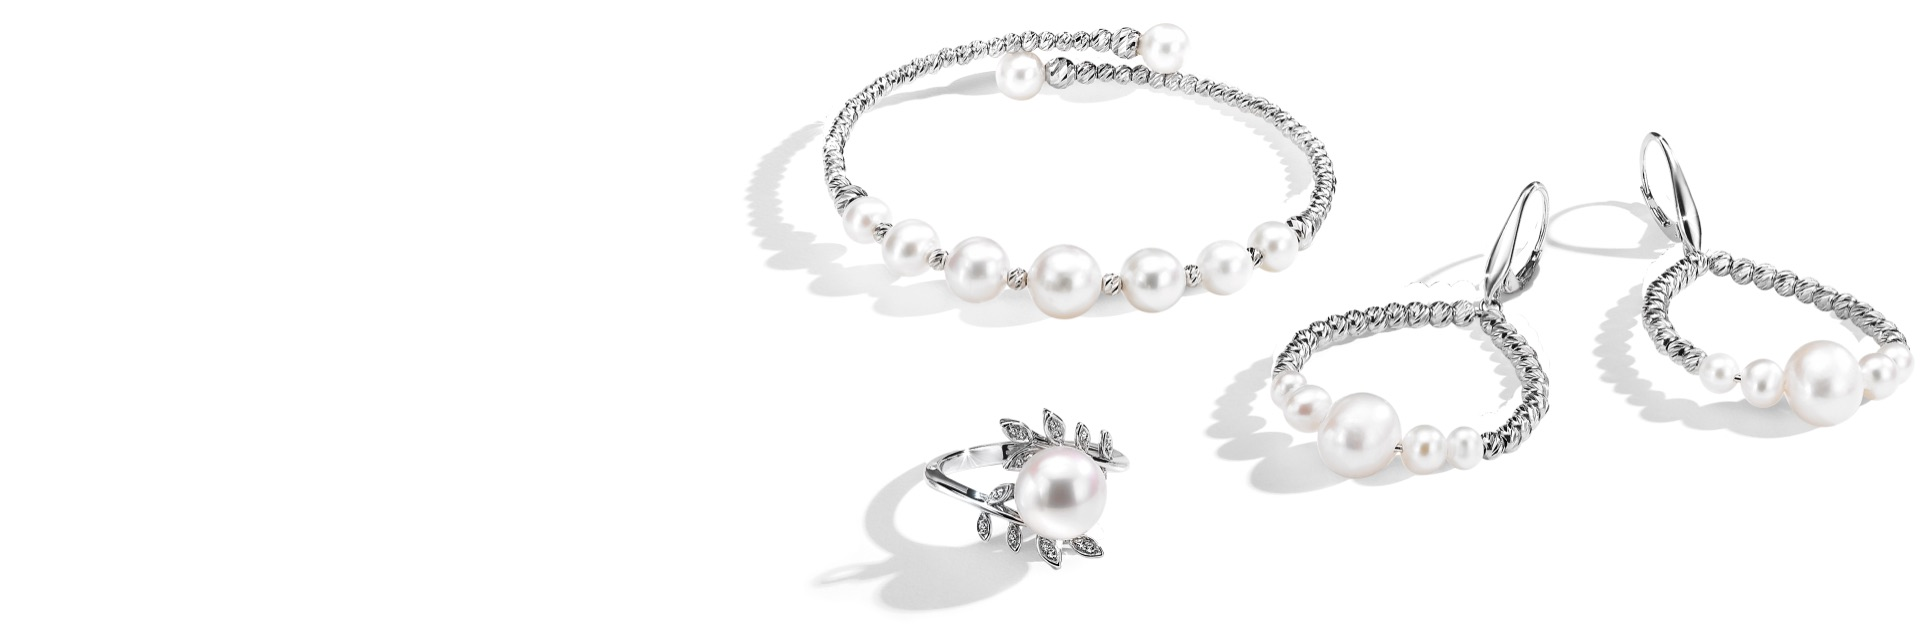 Cultured pearl bracelet, earrings and ring in textured settings from Jared on a white background.